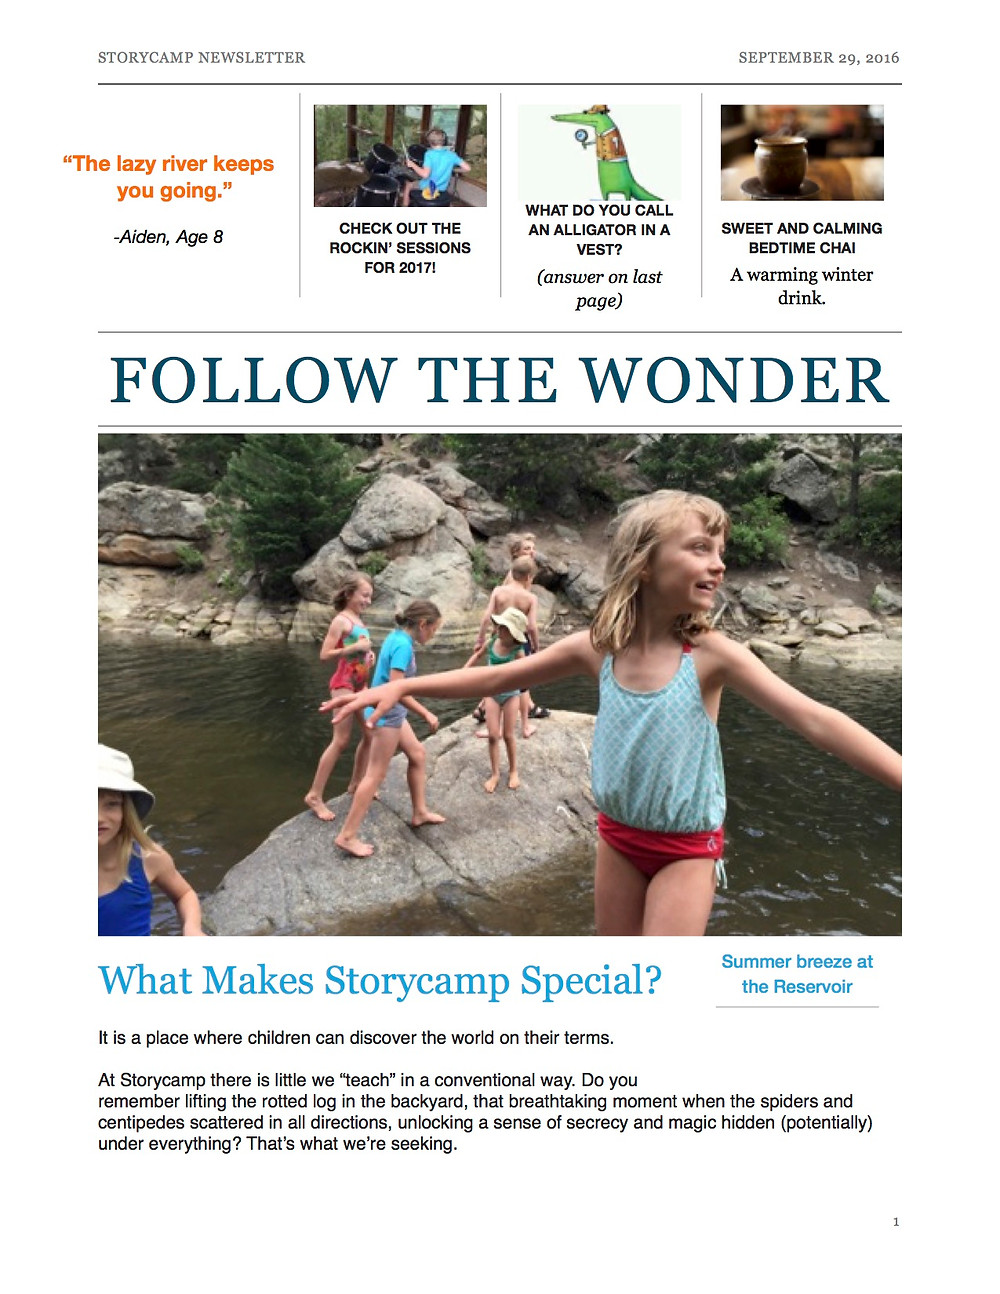 Follow the Wonder:  A Bi-monthly Storycamp Newsletter